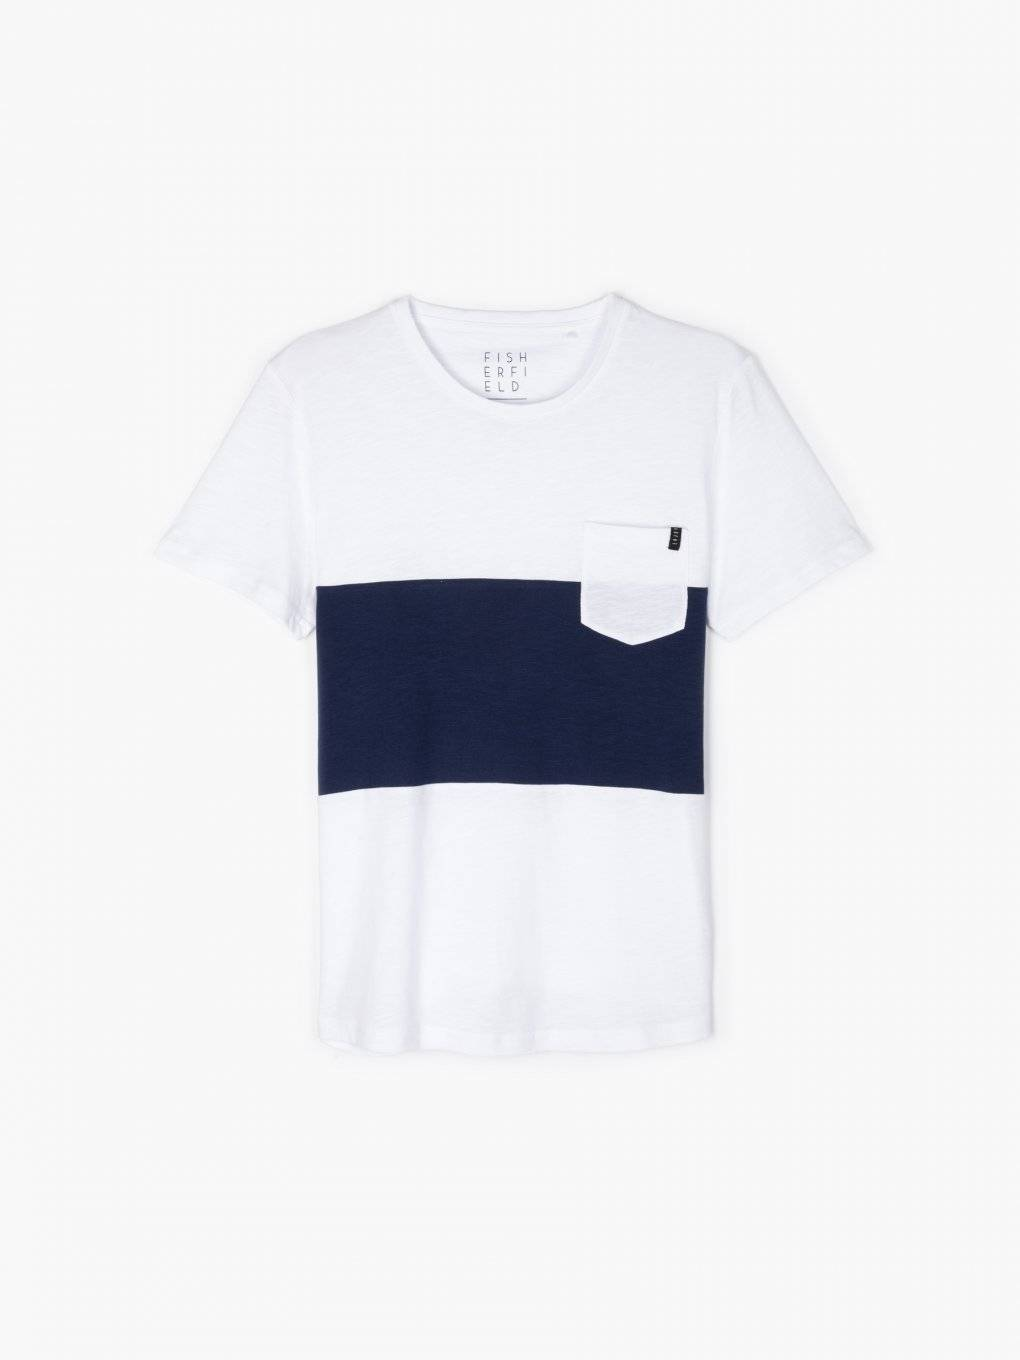 Longline colour block t-shirt with chest pocket